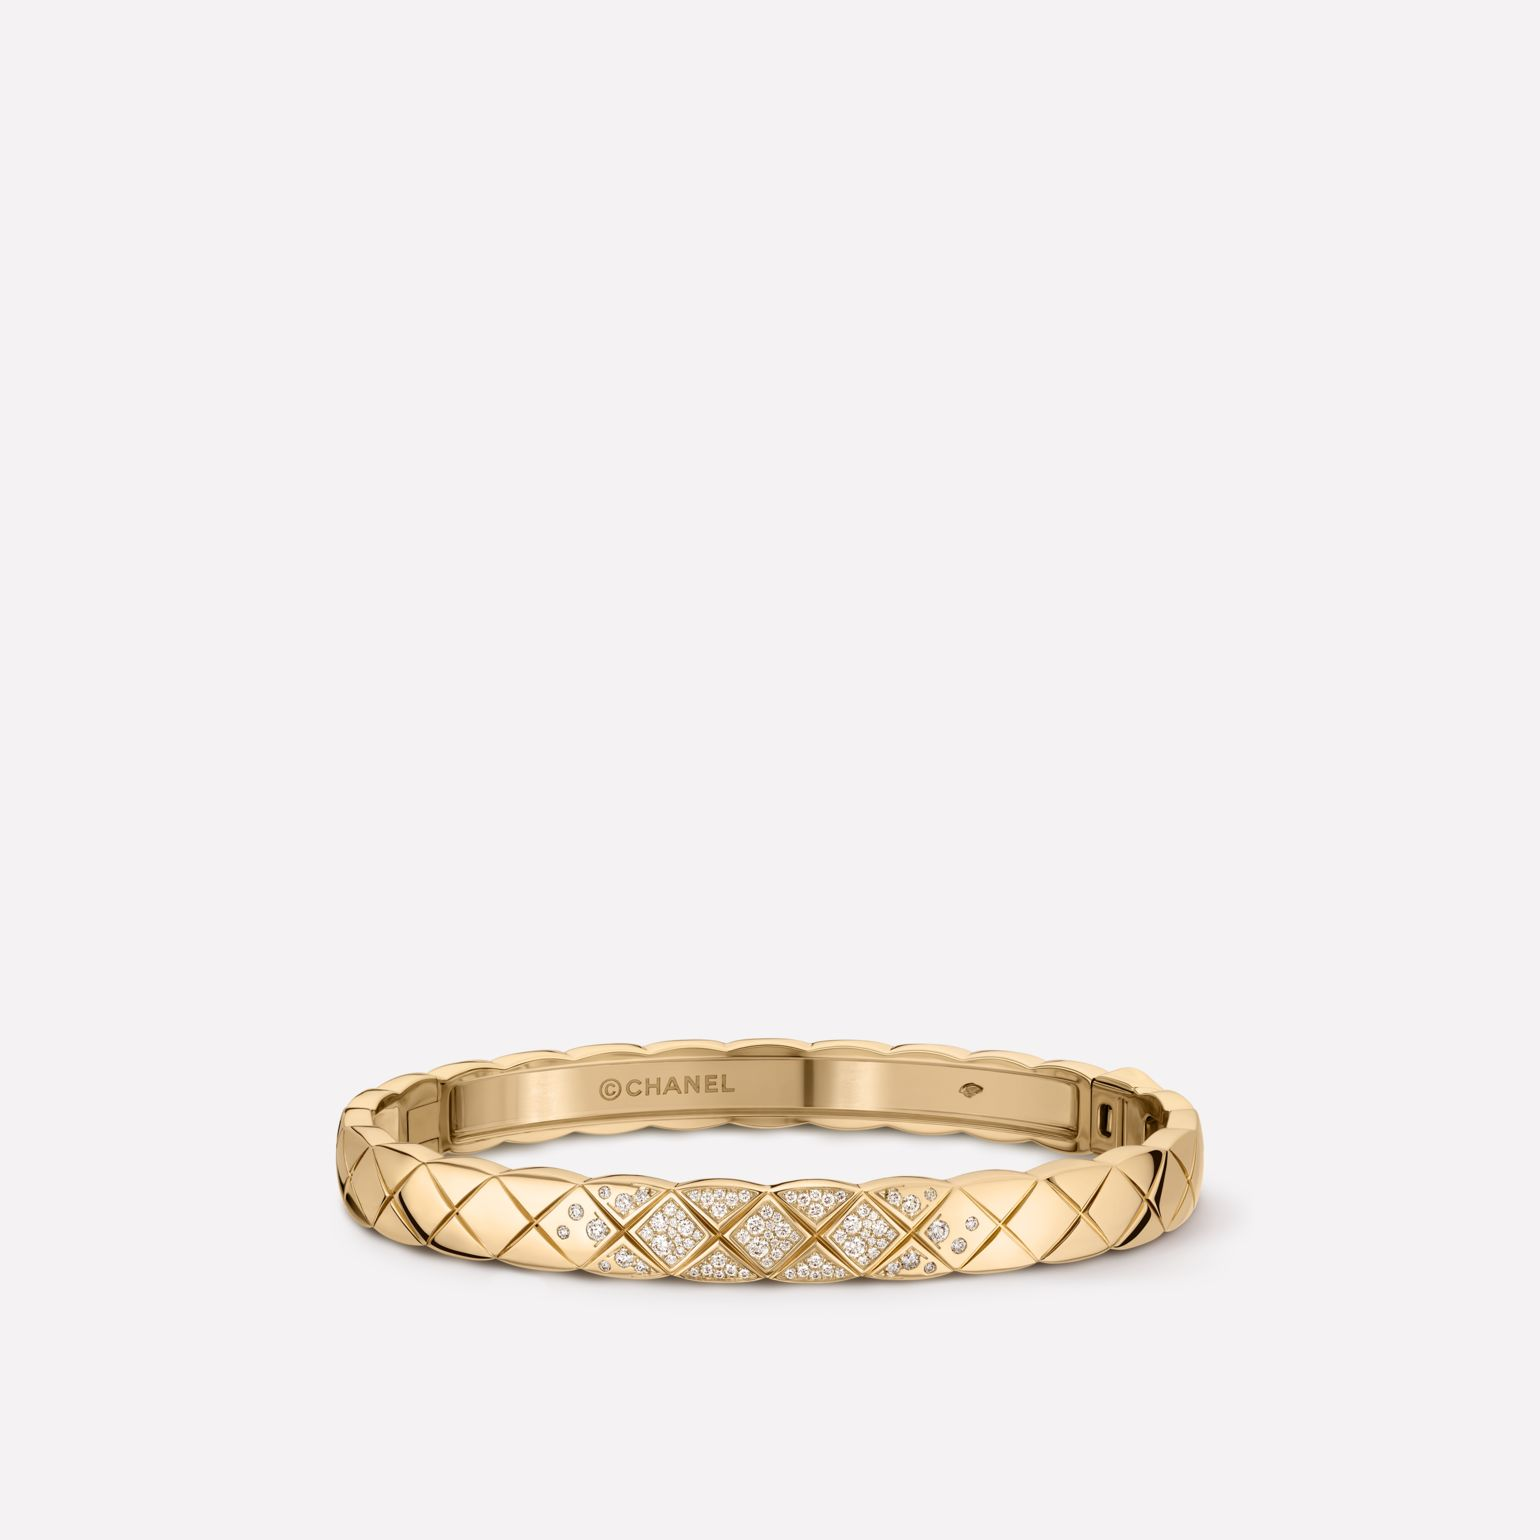 Coco Crush bracelet Quilted motif, 18K BEIGE GOLD, diamonds